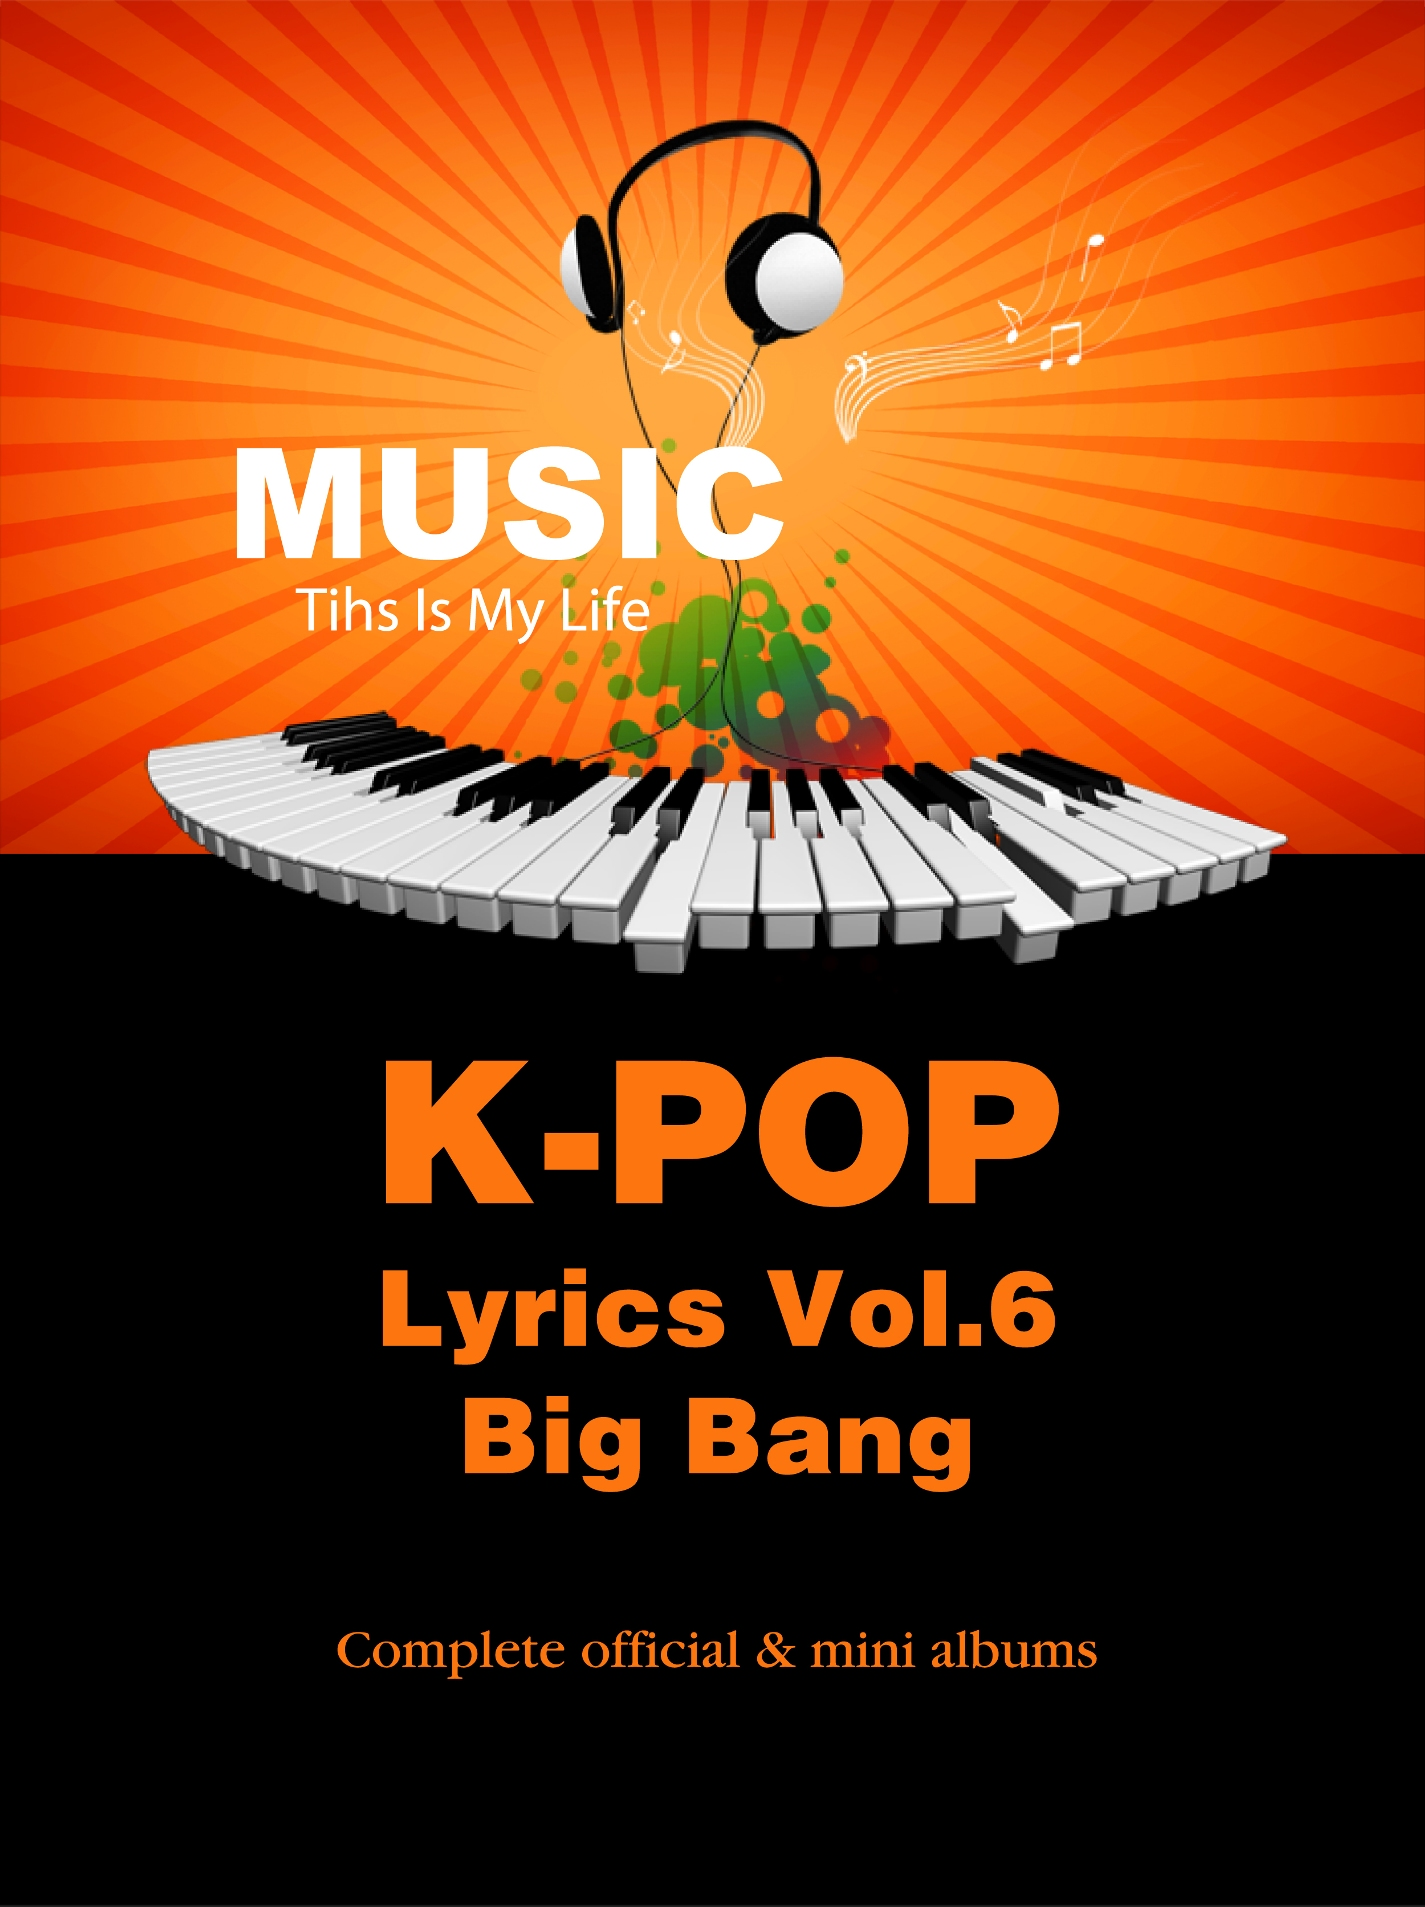 K-Pop Lyrics Vol.6 - Big Bang